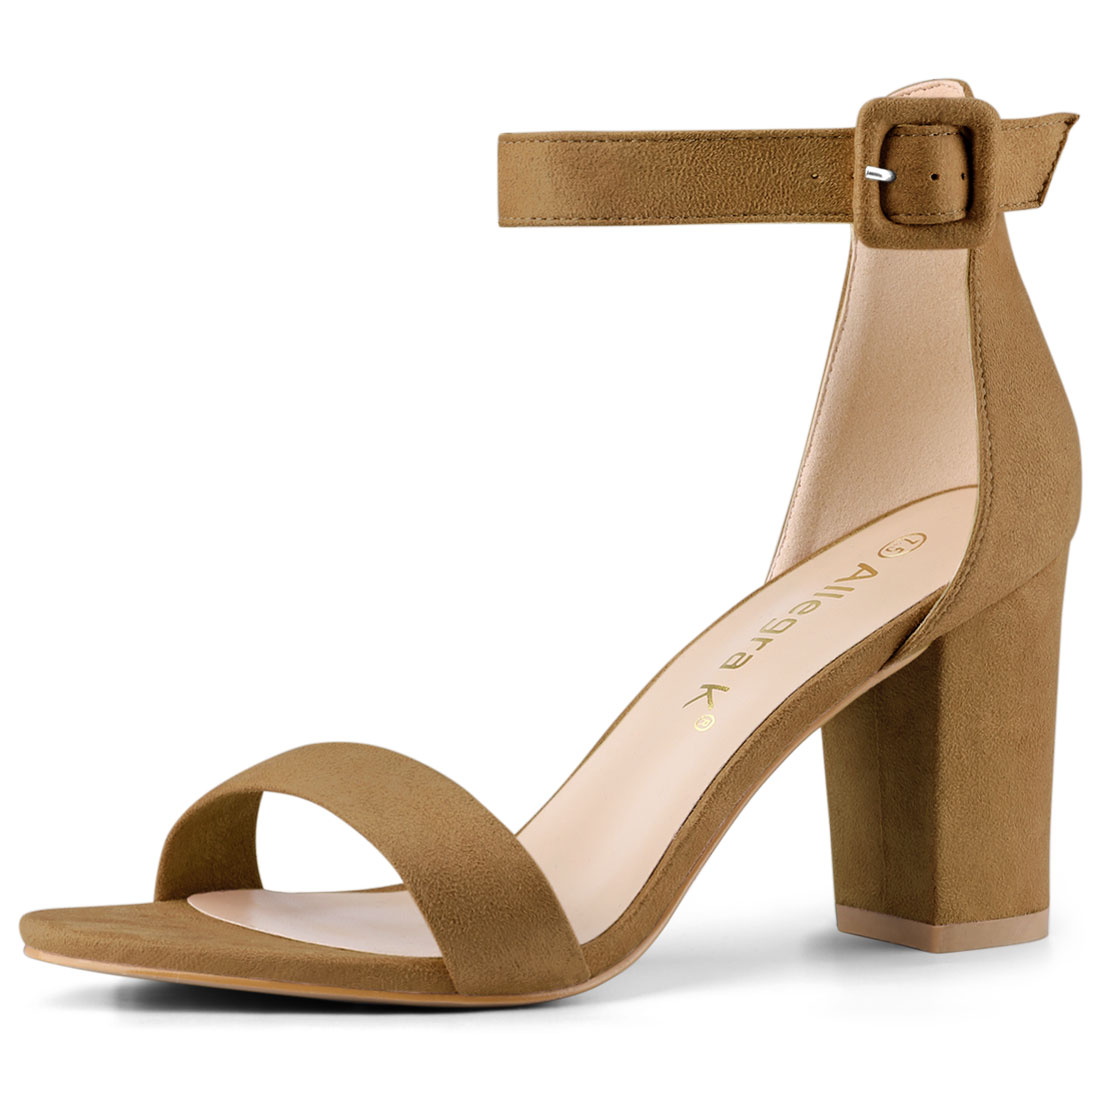 Woman Open Toe Chunky High Heel Ankle Strap Sandals Camel US 8.5